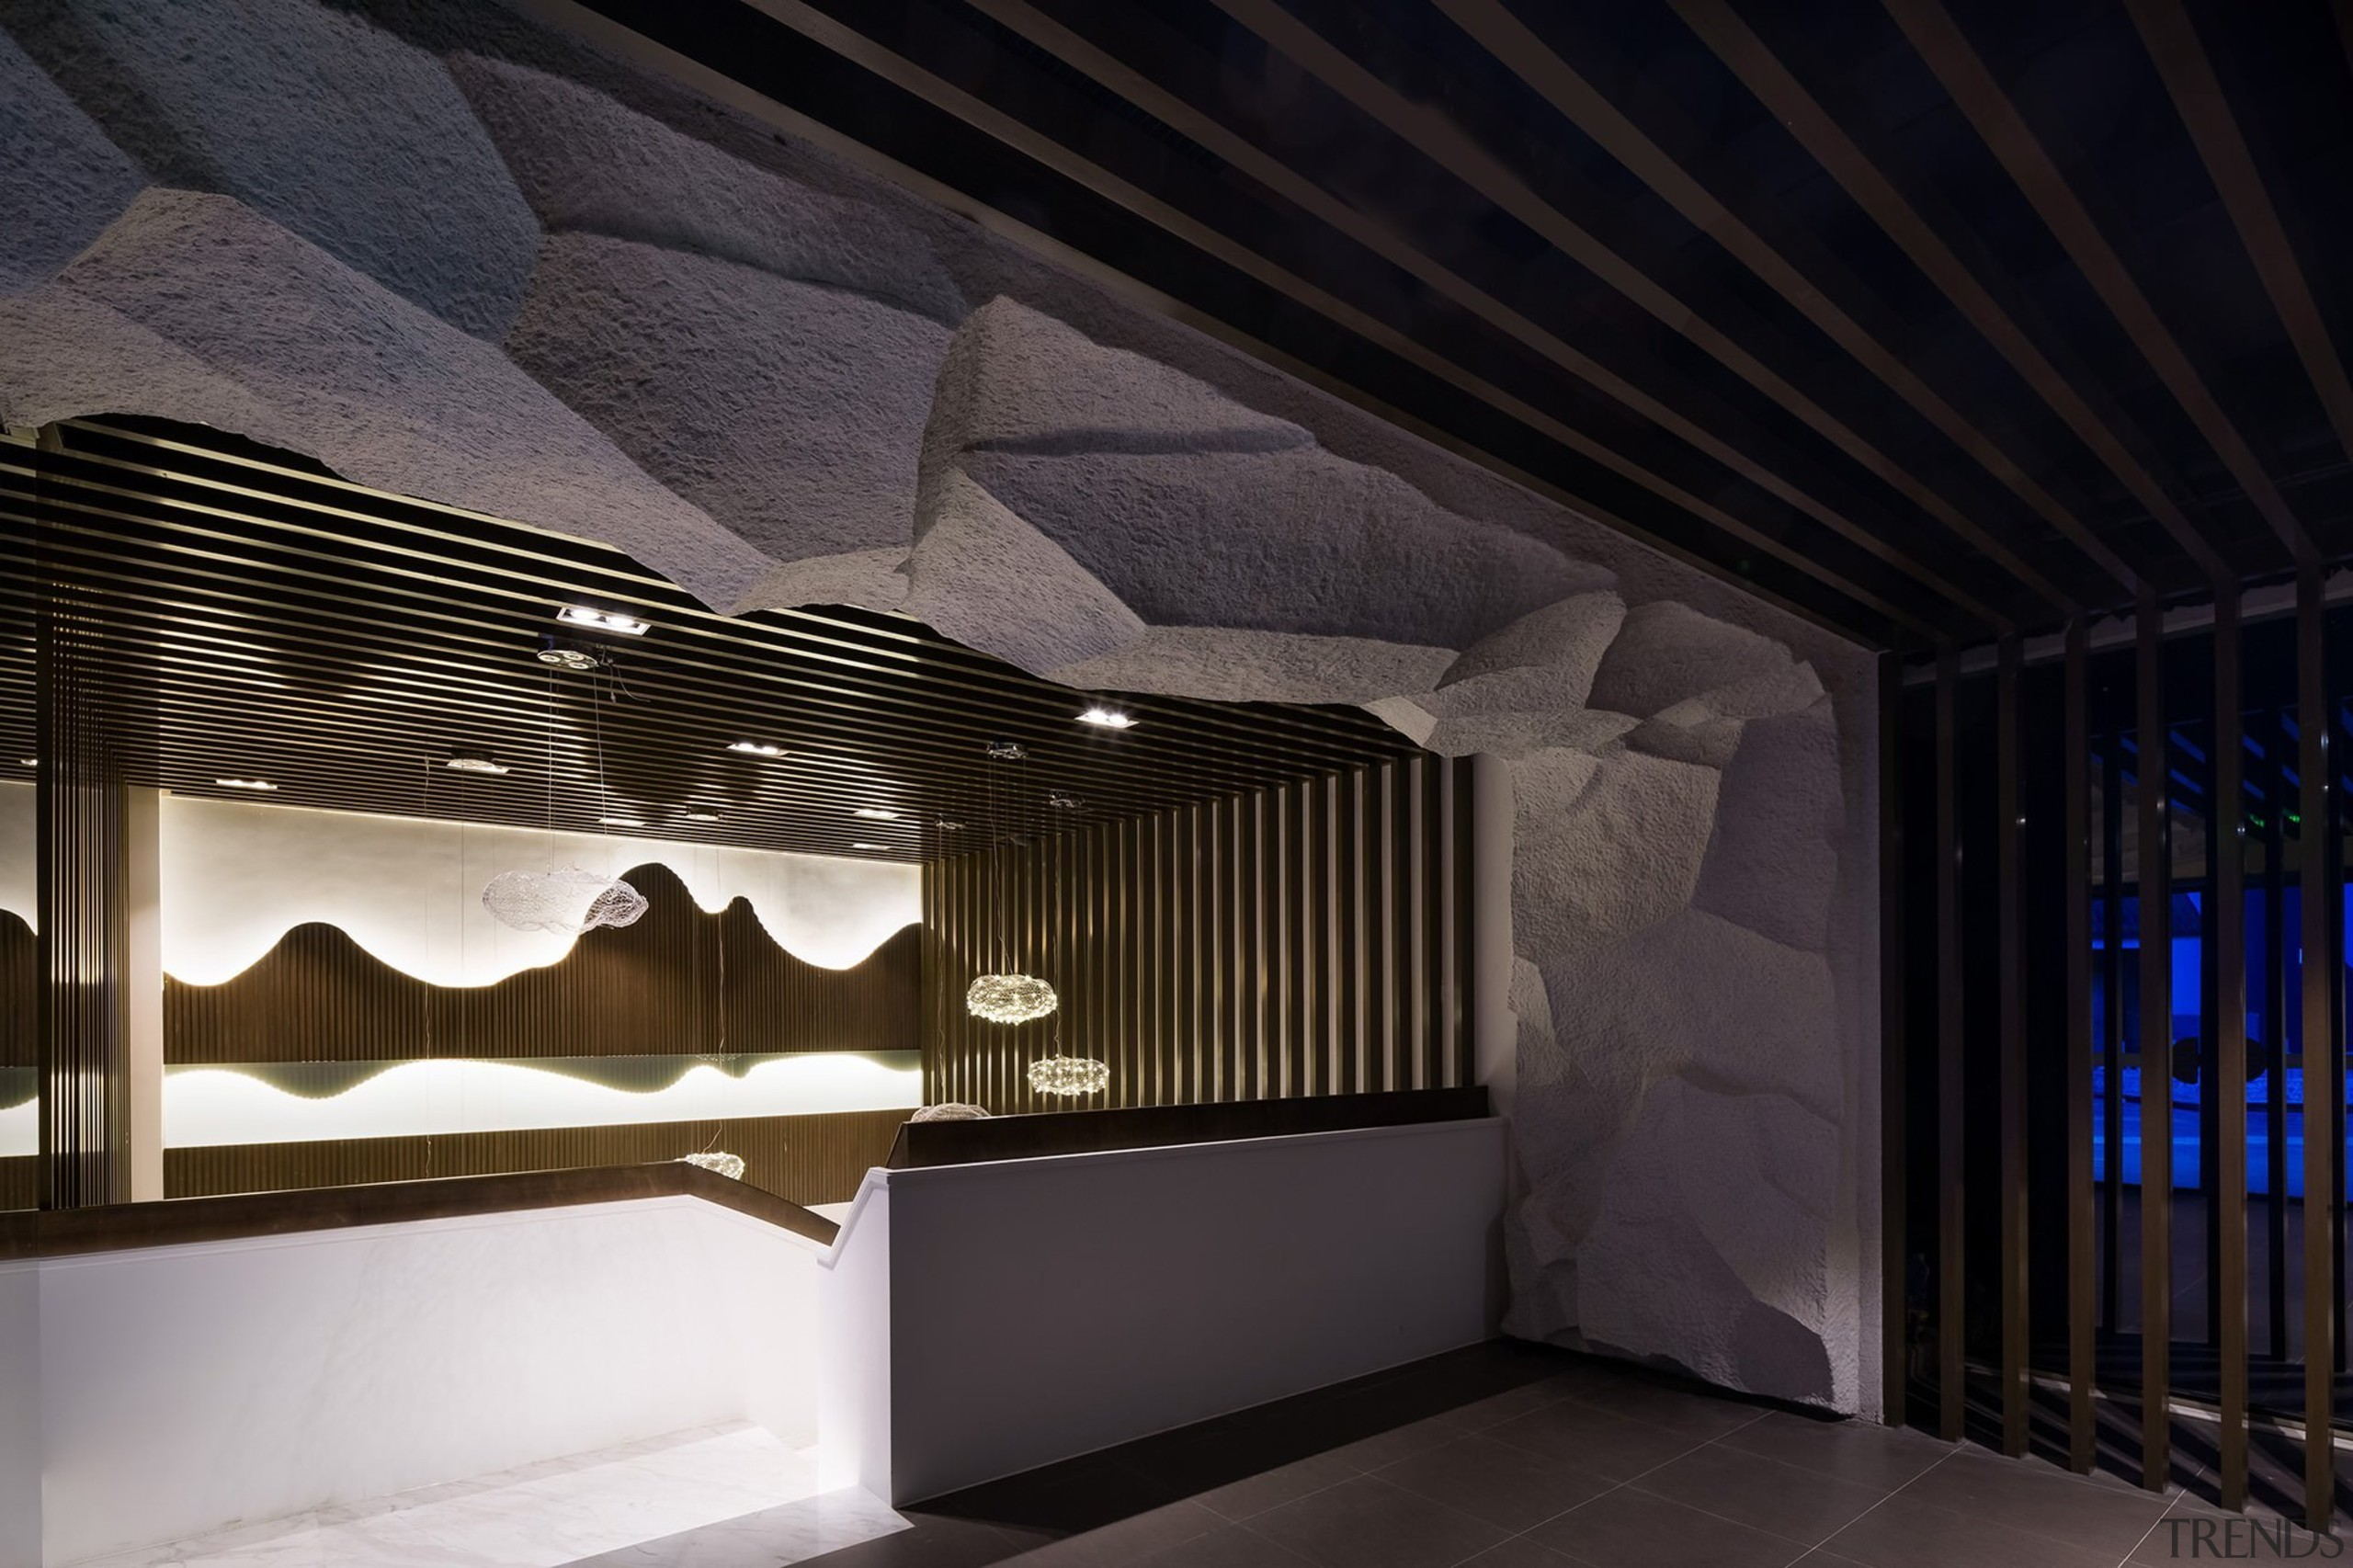 The rock runs up the wall and across architecture, ceiling, daylighting, interior design, light, lighting, structure, tourist attraction, black